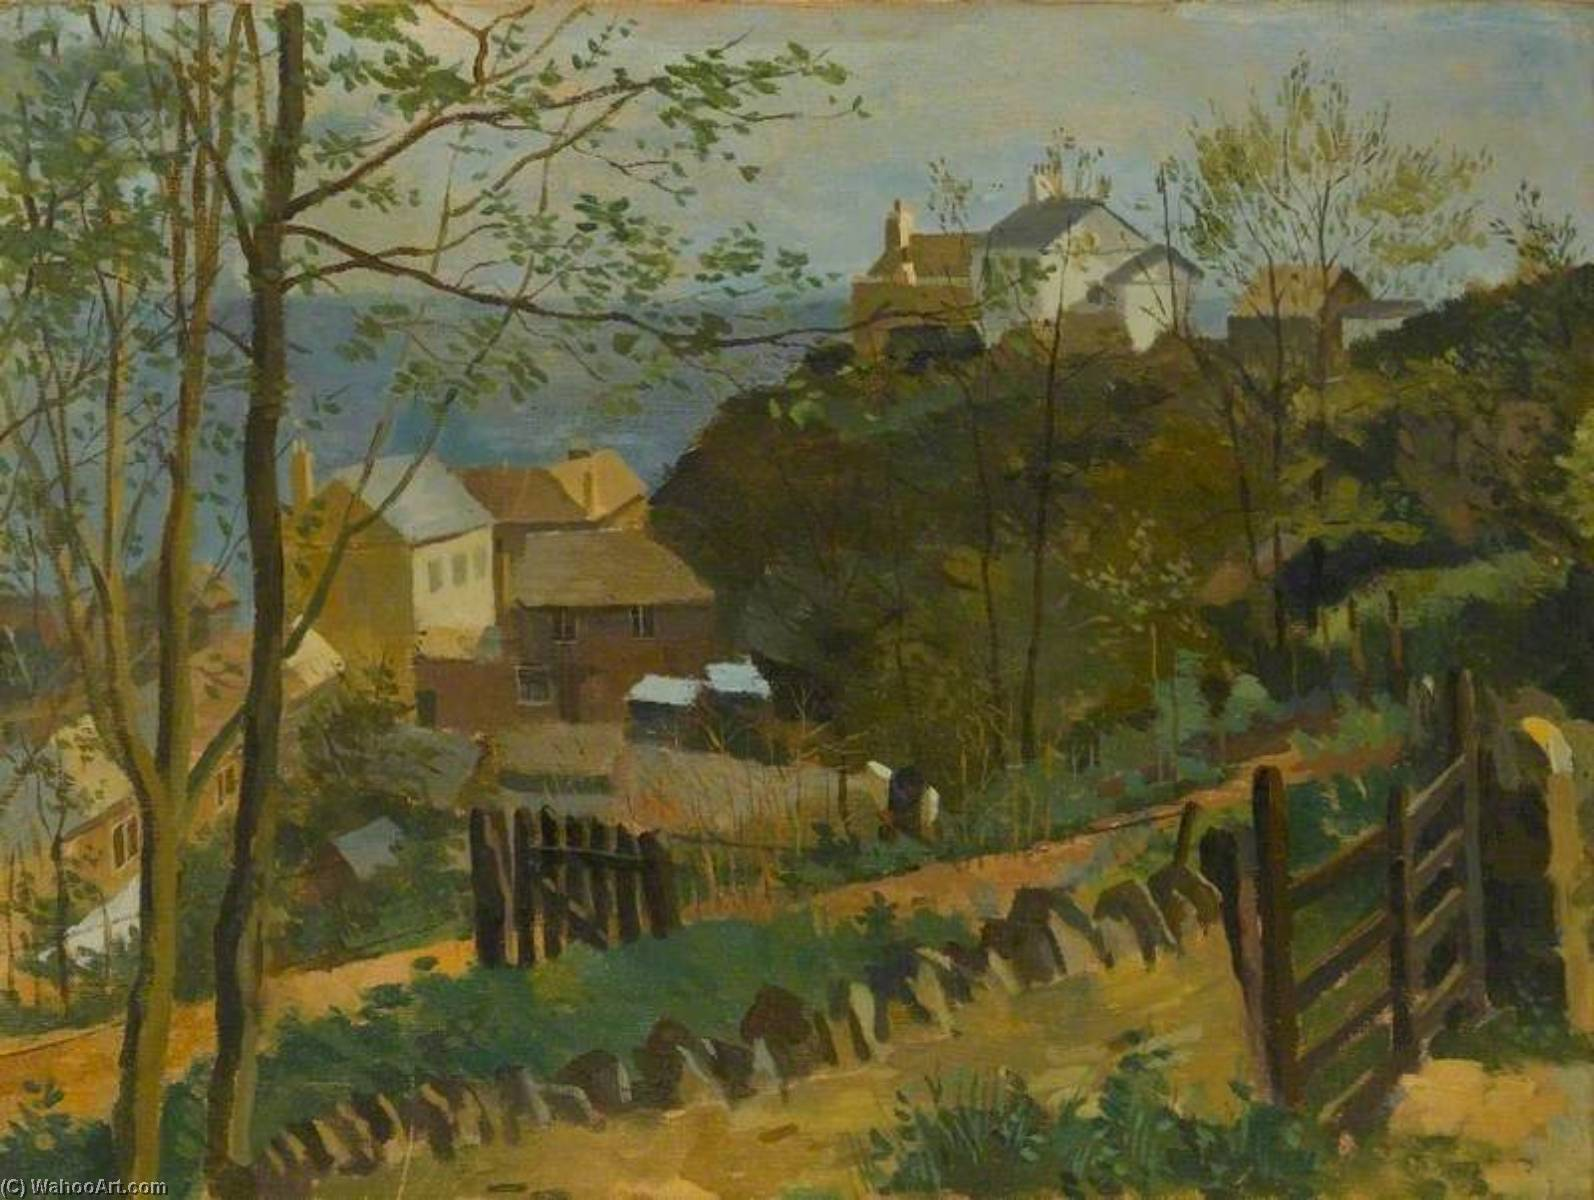 The White House, Torcross, 1938 by Kenneth Rowntree | Art Reproduction | WahooArt.com